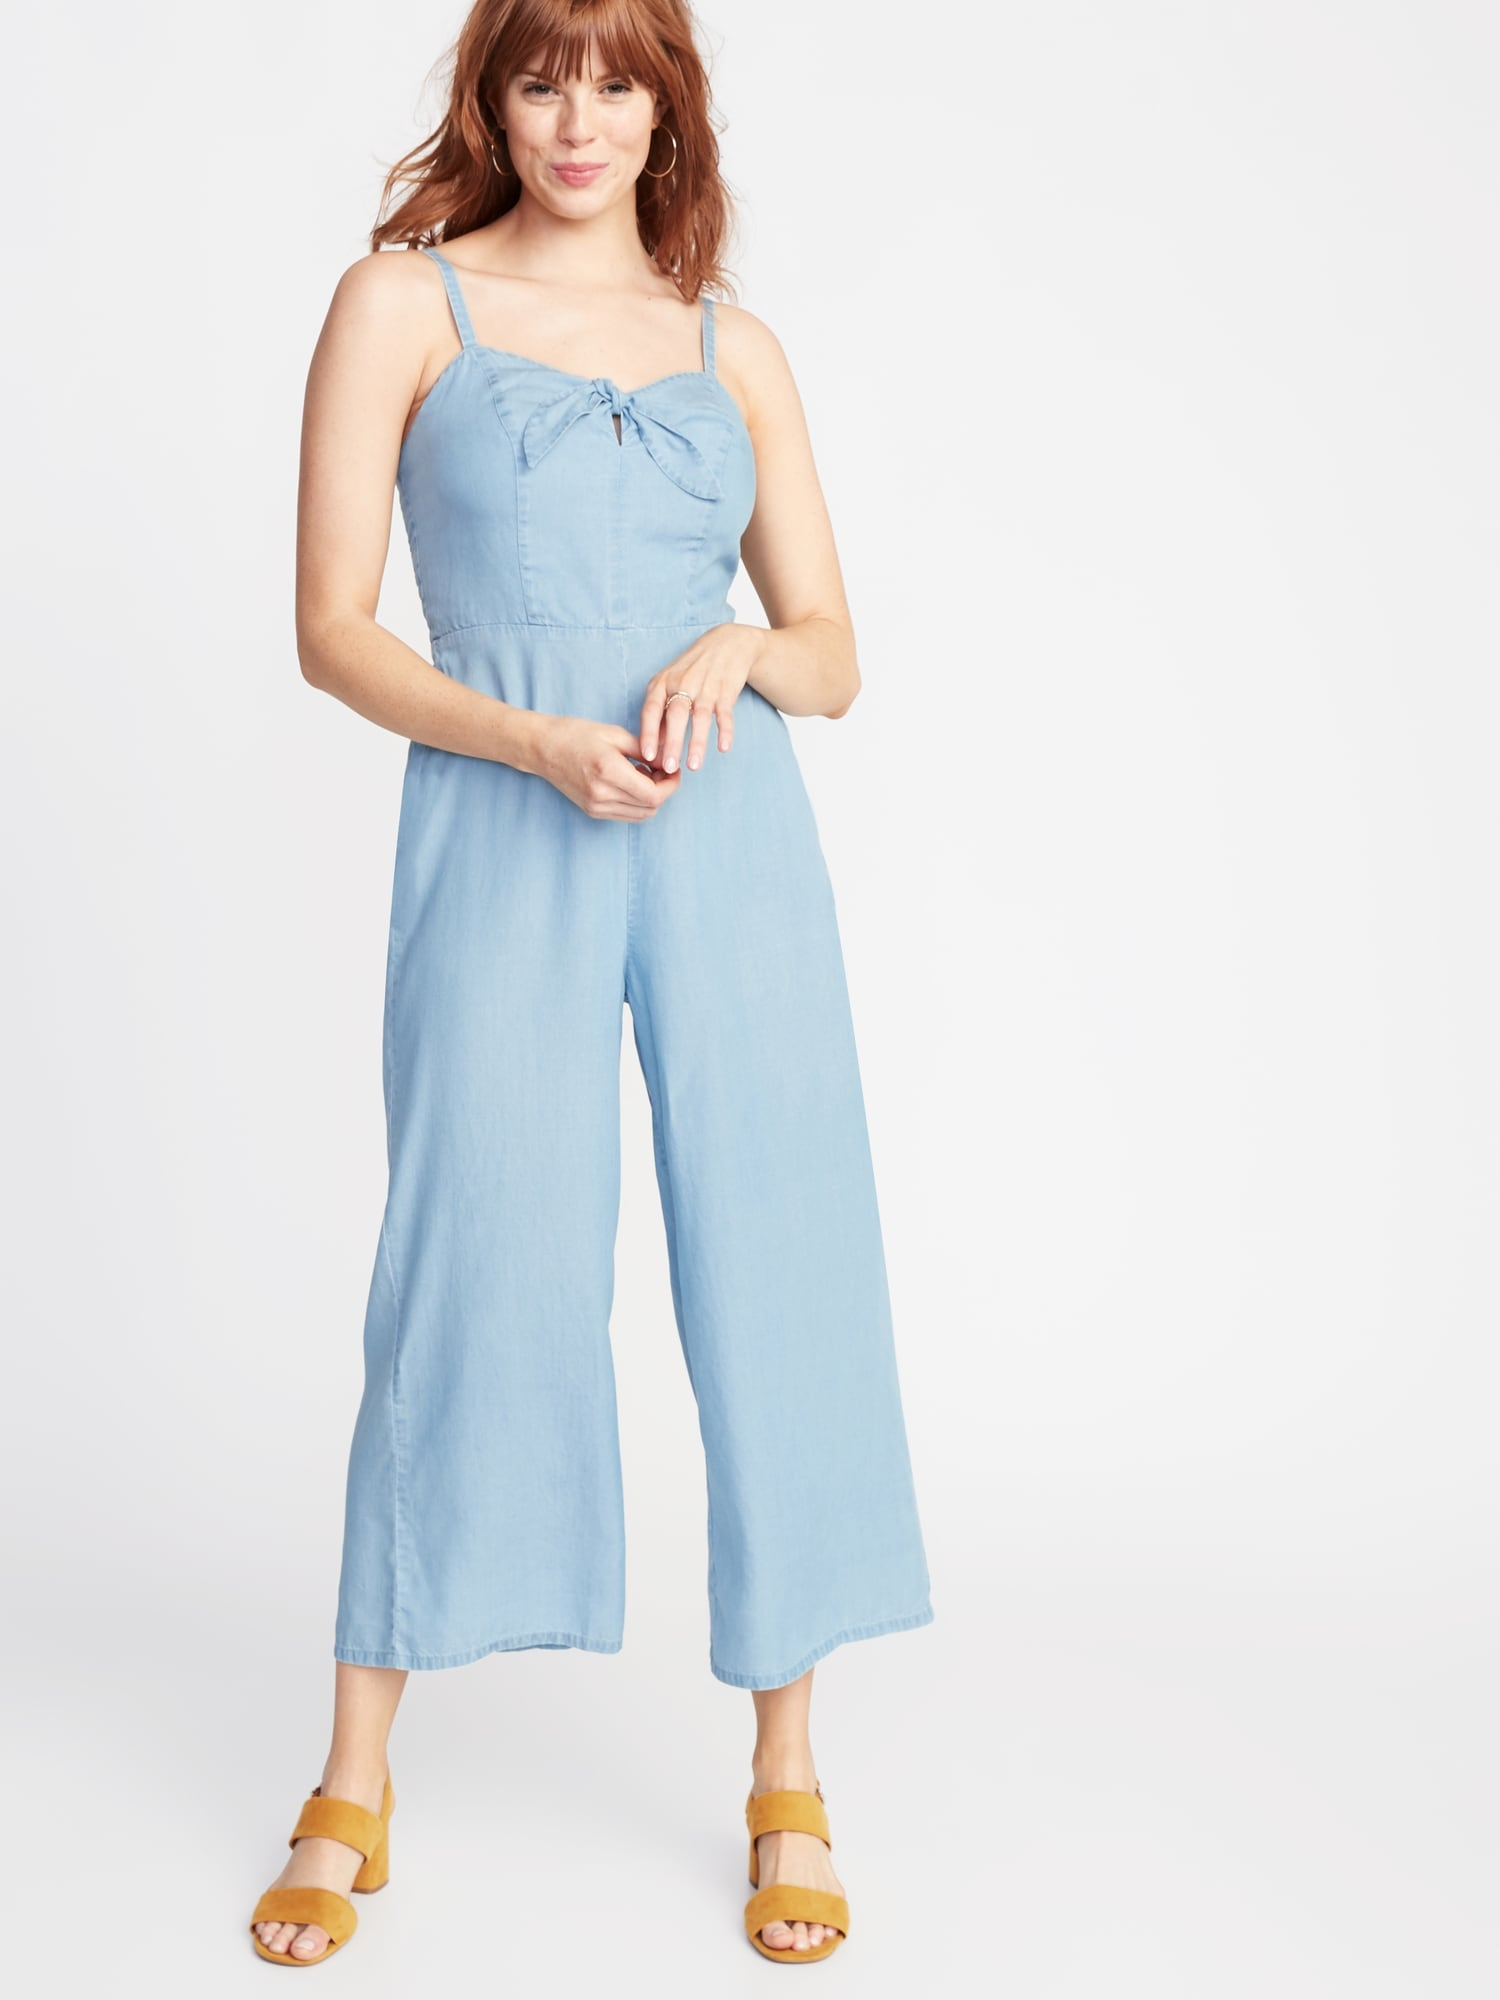 7719b5993181b Sleeveless Bow-Tie Front Chambray Jumpsuit for Women | Old Navy